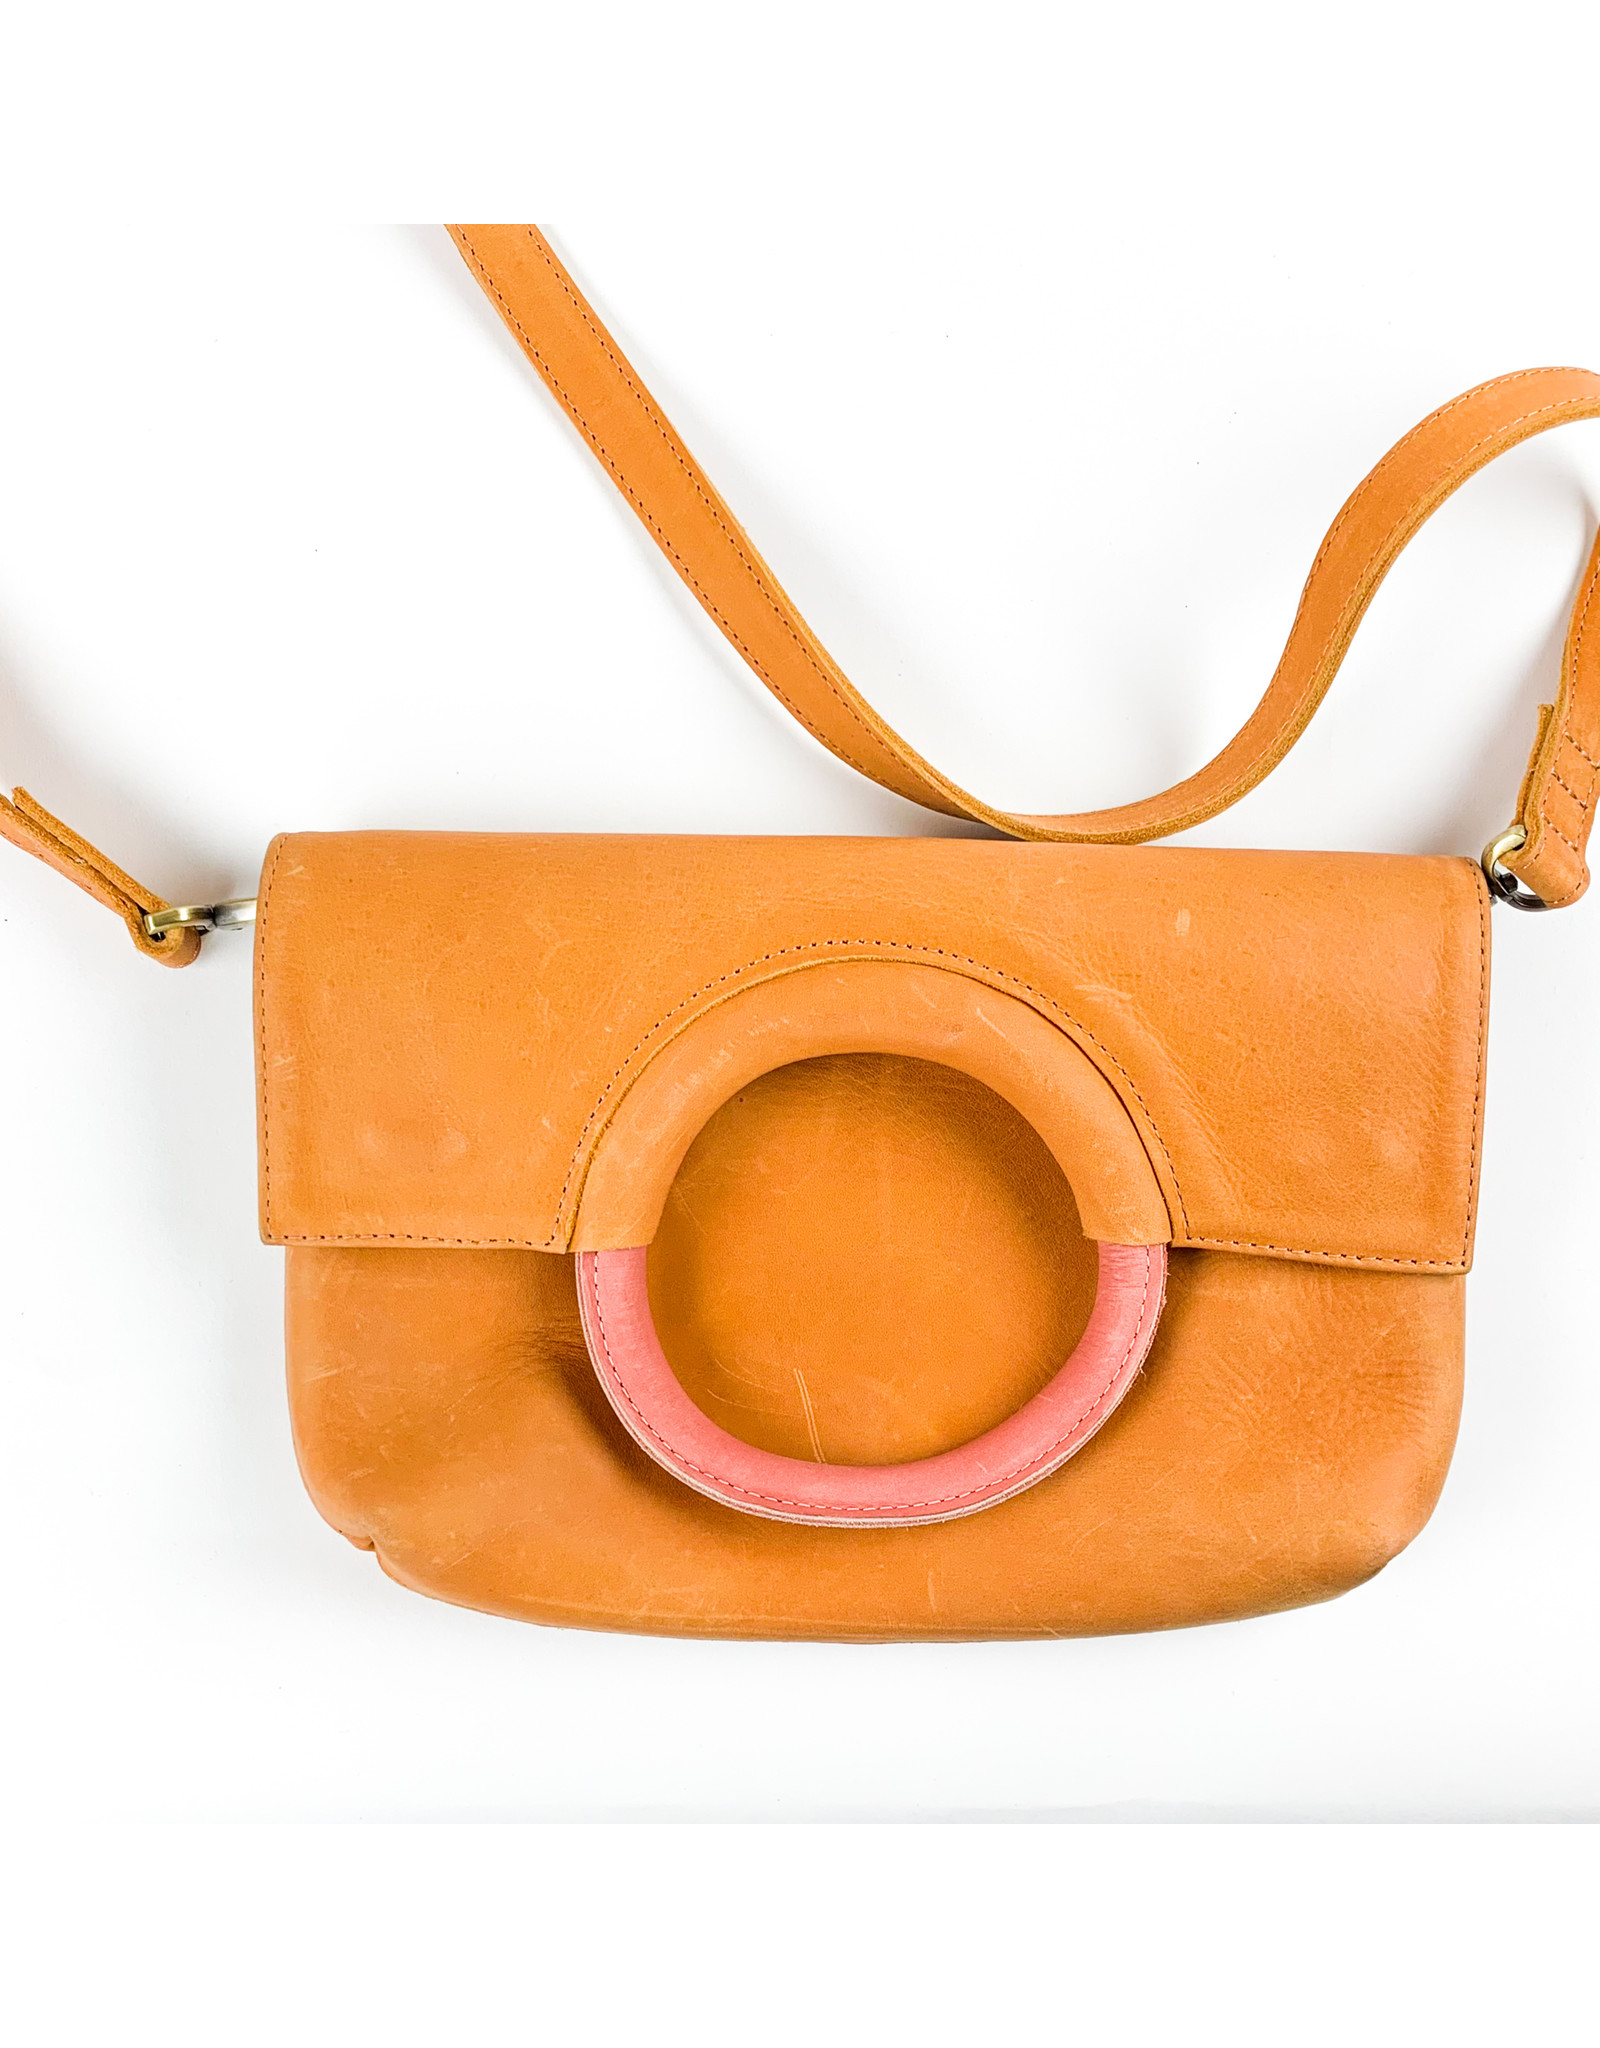 Able Fozi Ring Crossbody - Cognac and Rose